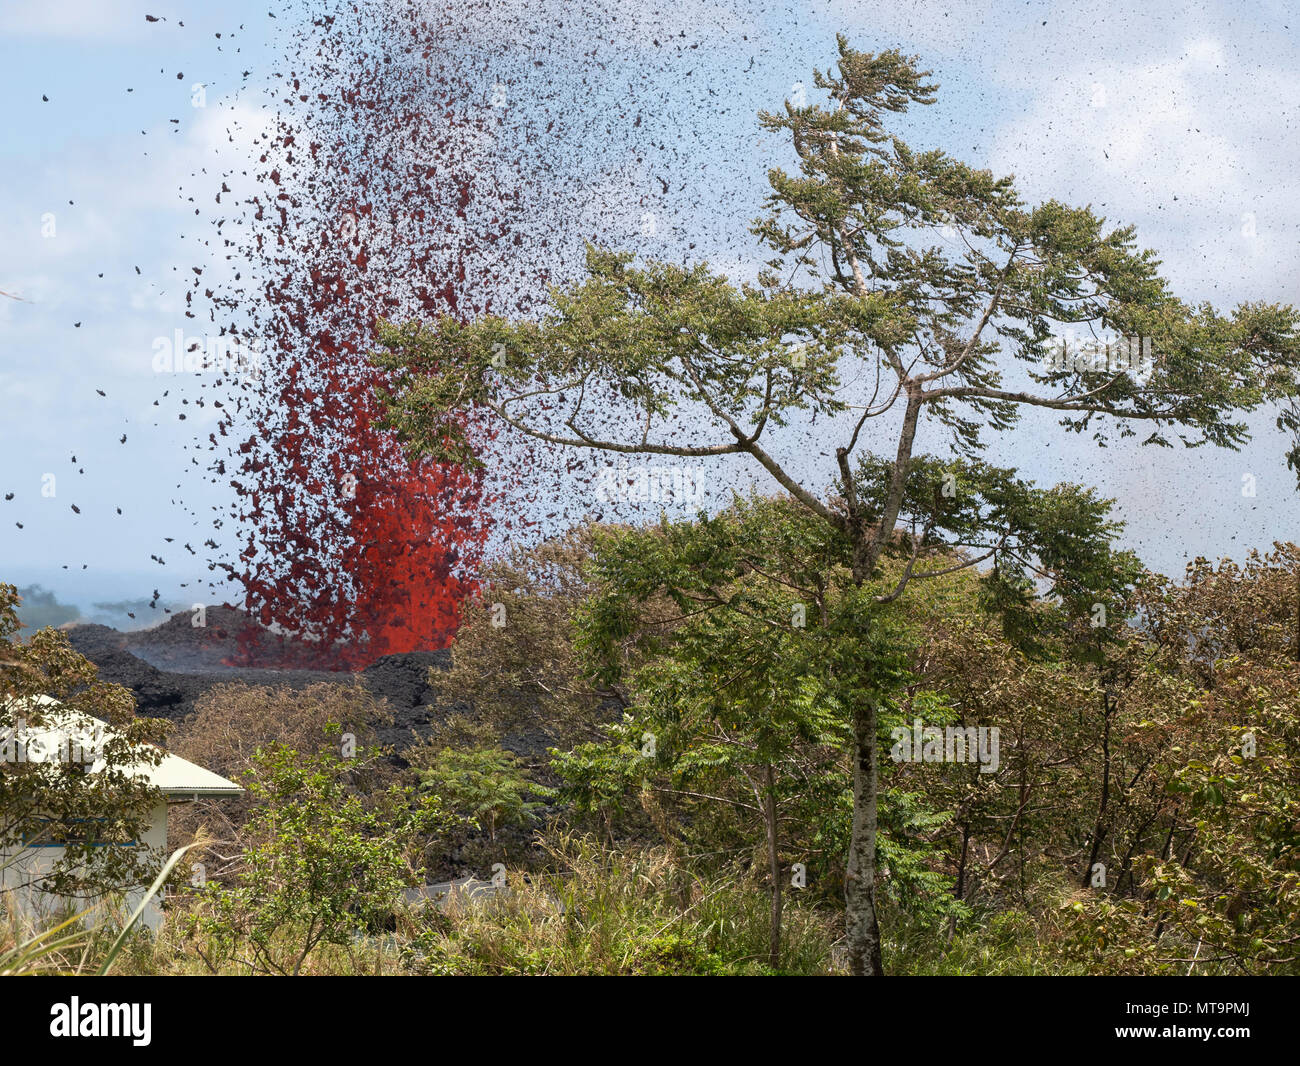 A 17th lava fissure erupts hundreds of feet in the air during a volcano outbreak May 18, 2018, Pahoa, Hawaii. In response to the ongoing outbreak, more than 100 members of the Hawaii National Guard have been called upon to assist Hawaii County agencies as part of an operation called Task Force Hawaii. (U.S. Air National Guard photo by Senior Airman John Linzmeier) - Stock Image